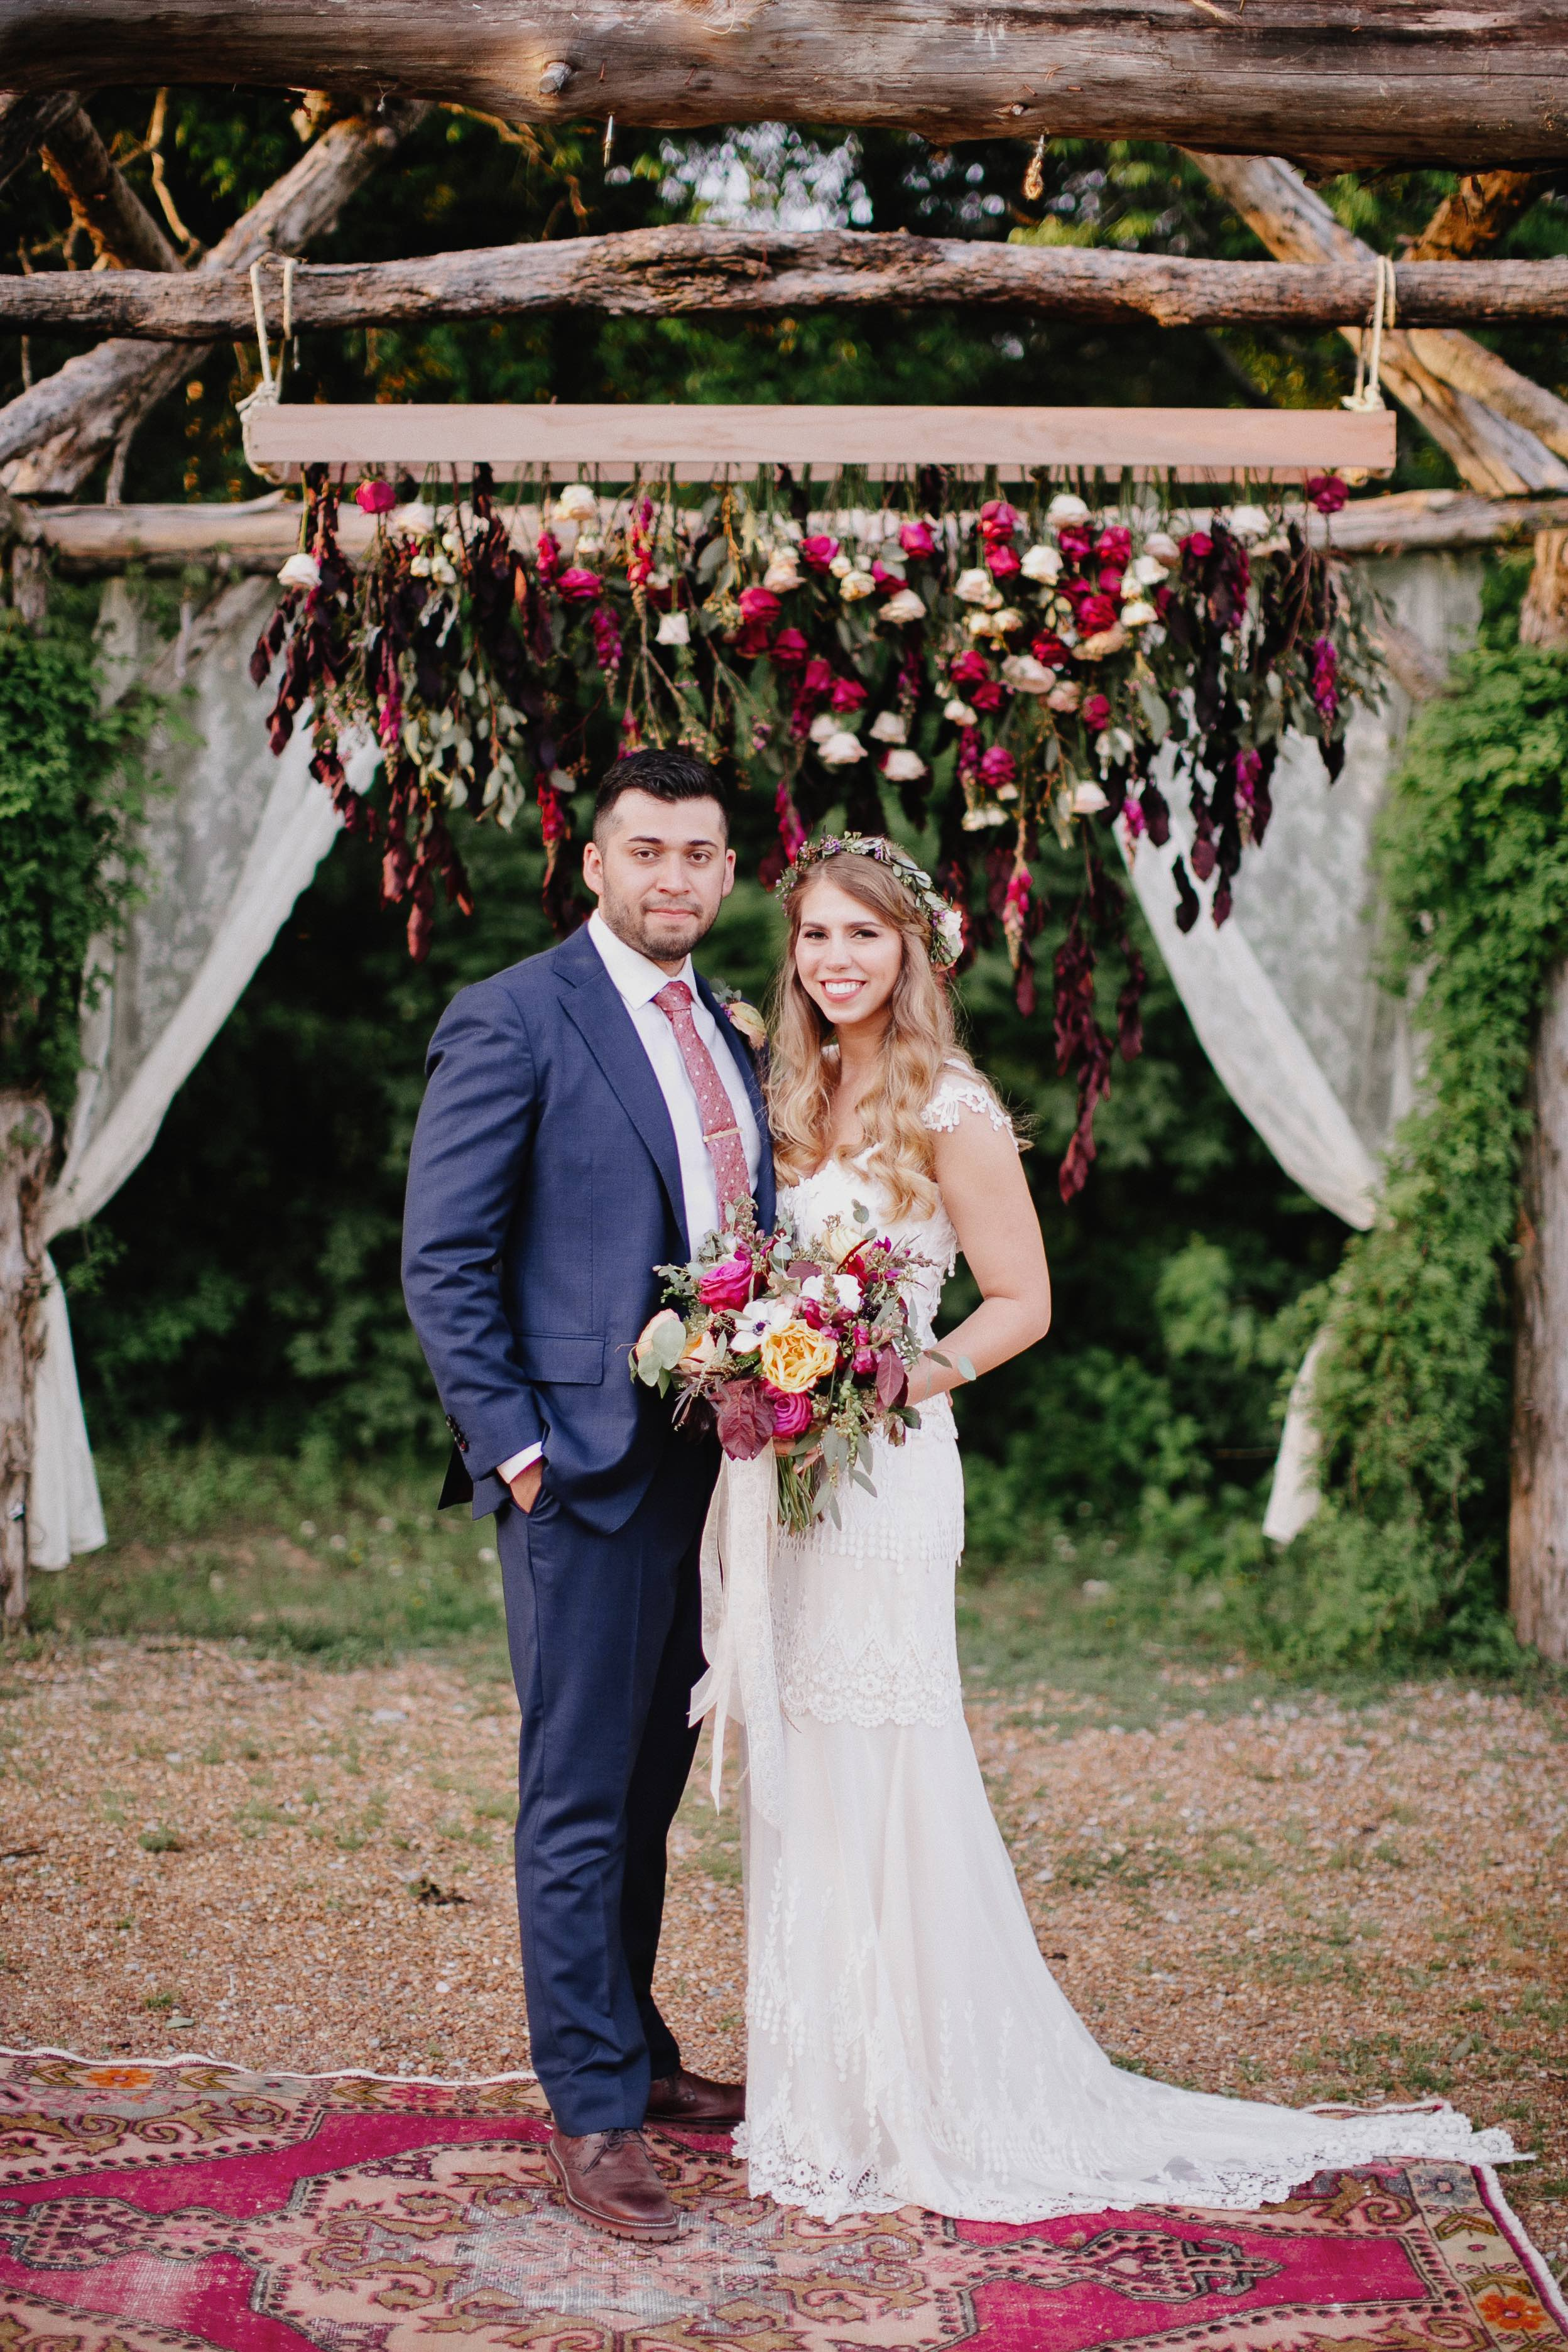 Rustic, bohemian wedding in the Tennessee countryside // Nashville Floral Design